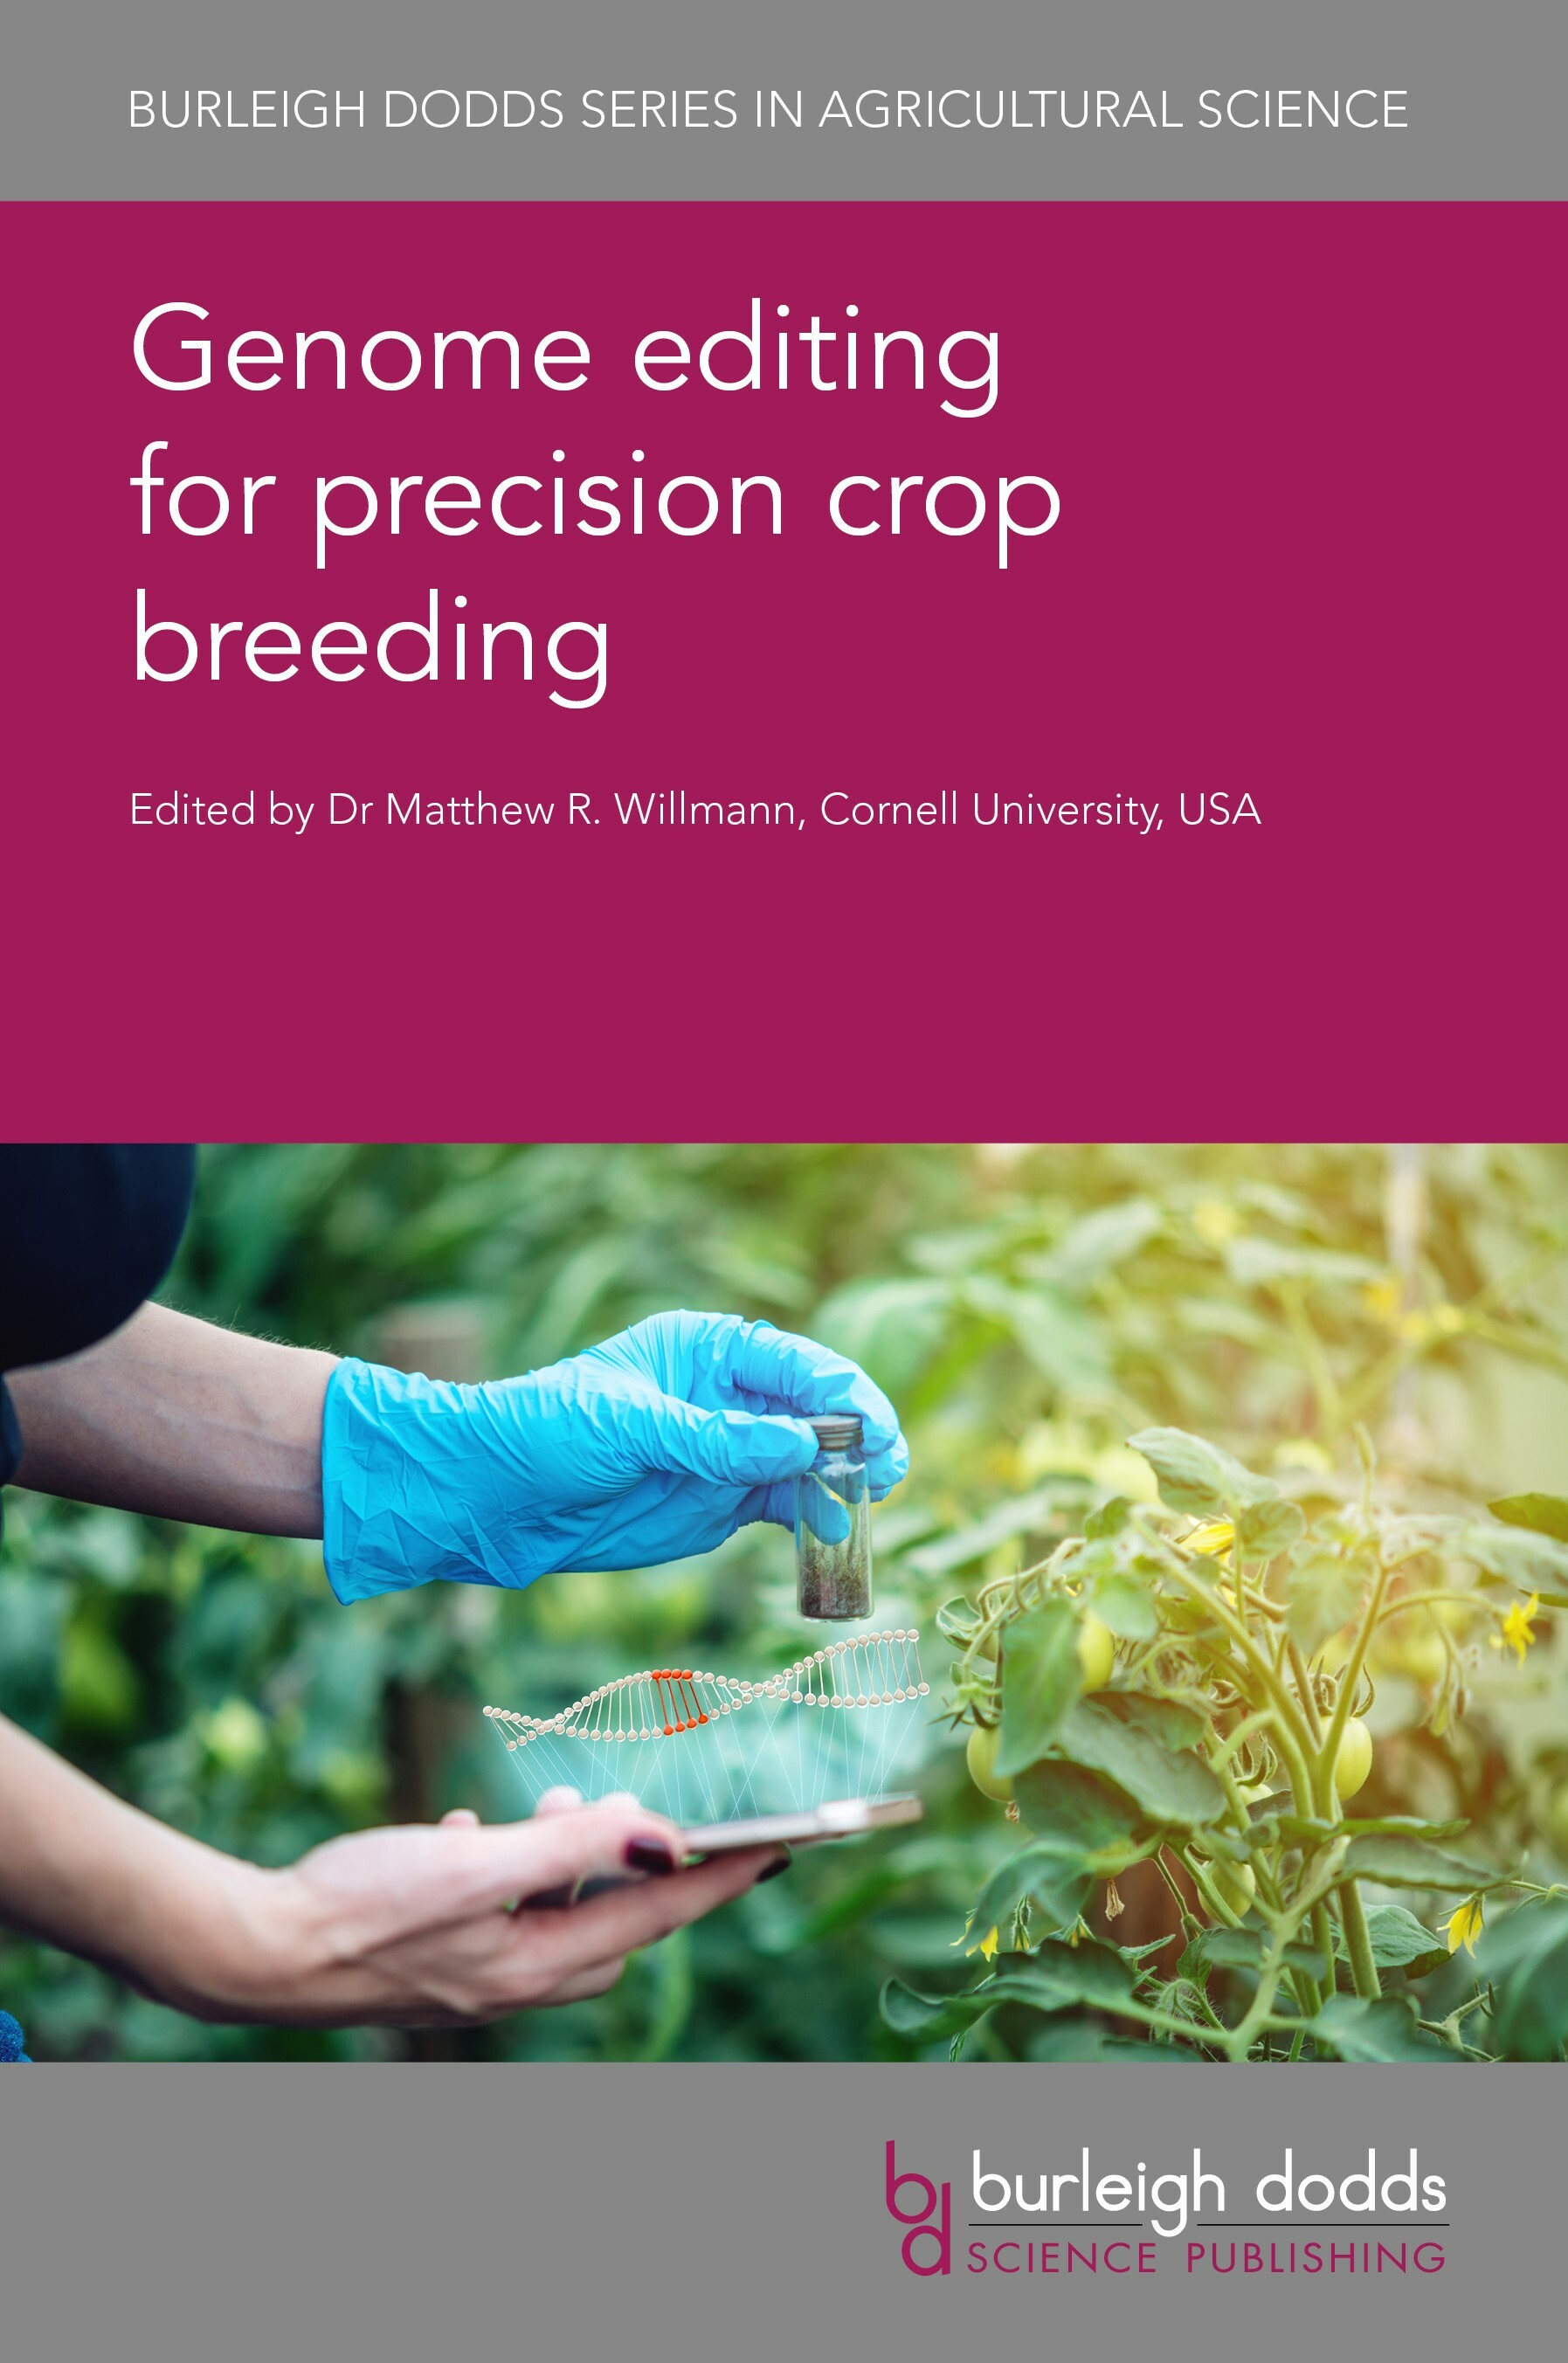 Genome editing for precision crop breeding